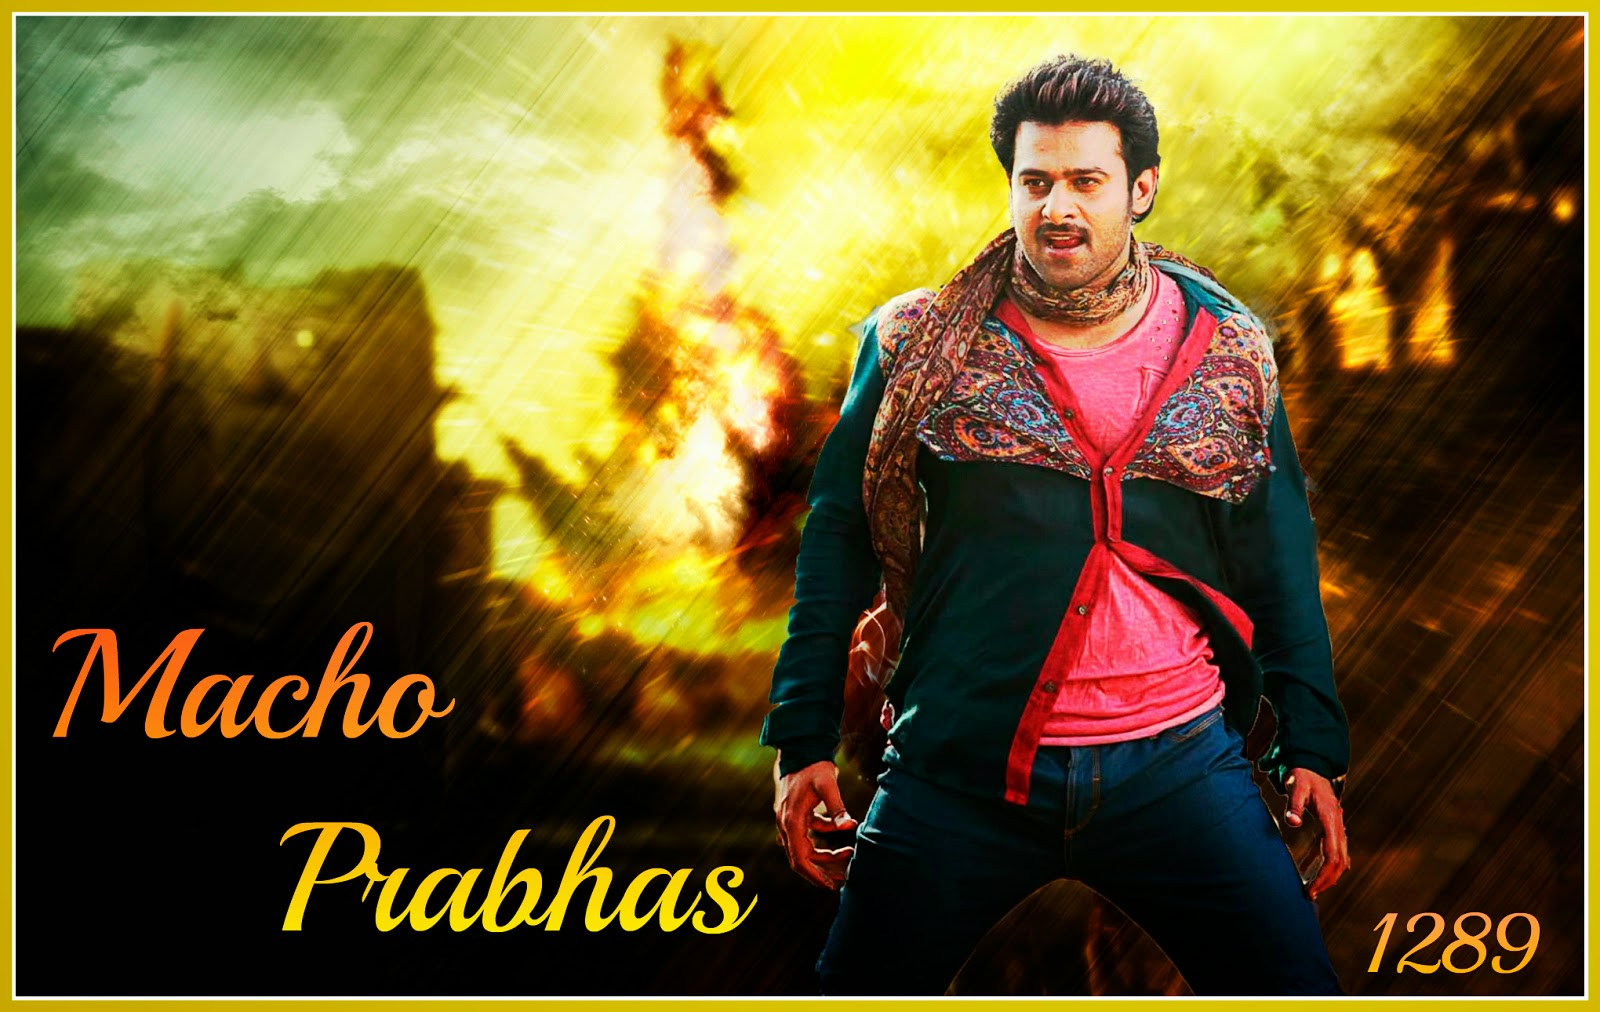 Stylish Prabhas Hq Wallpaper In Rebel: Prabhas 2 PrabhasFans: Prabhas Wallpapers (Set-2